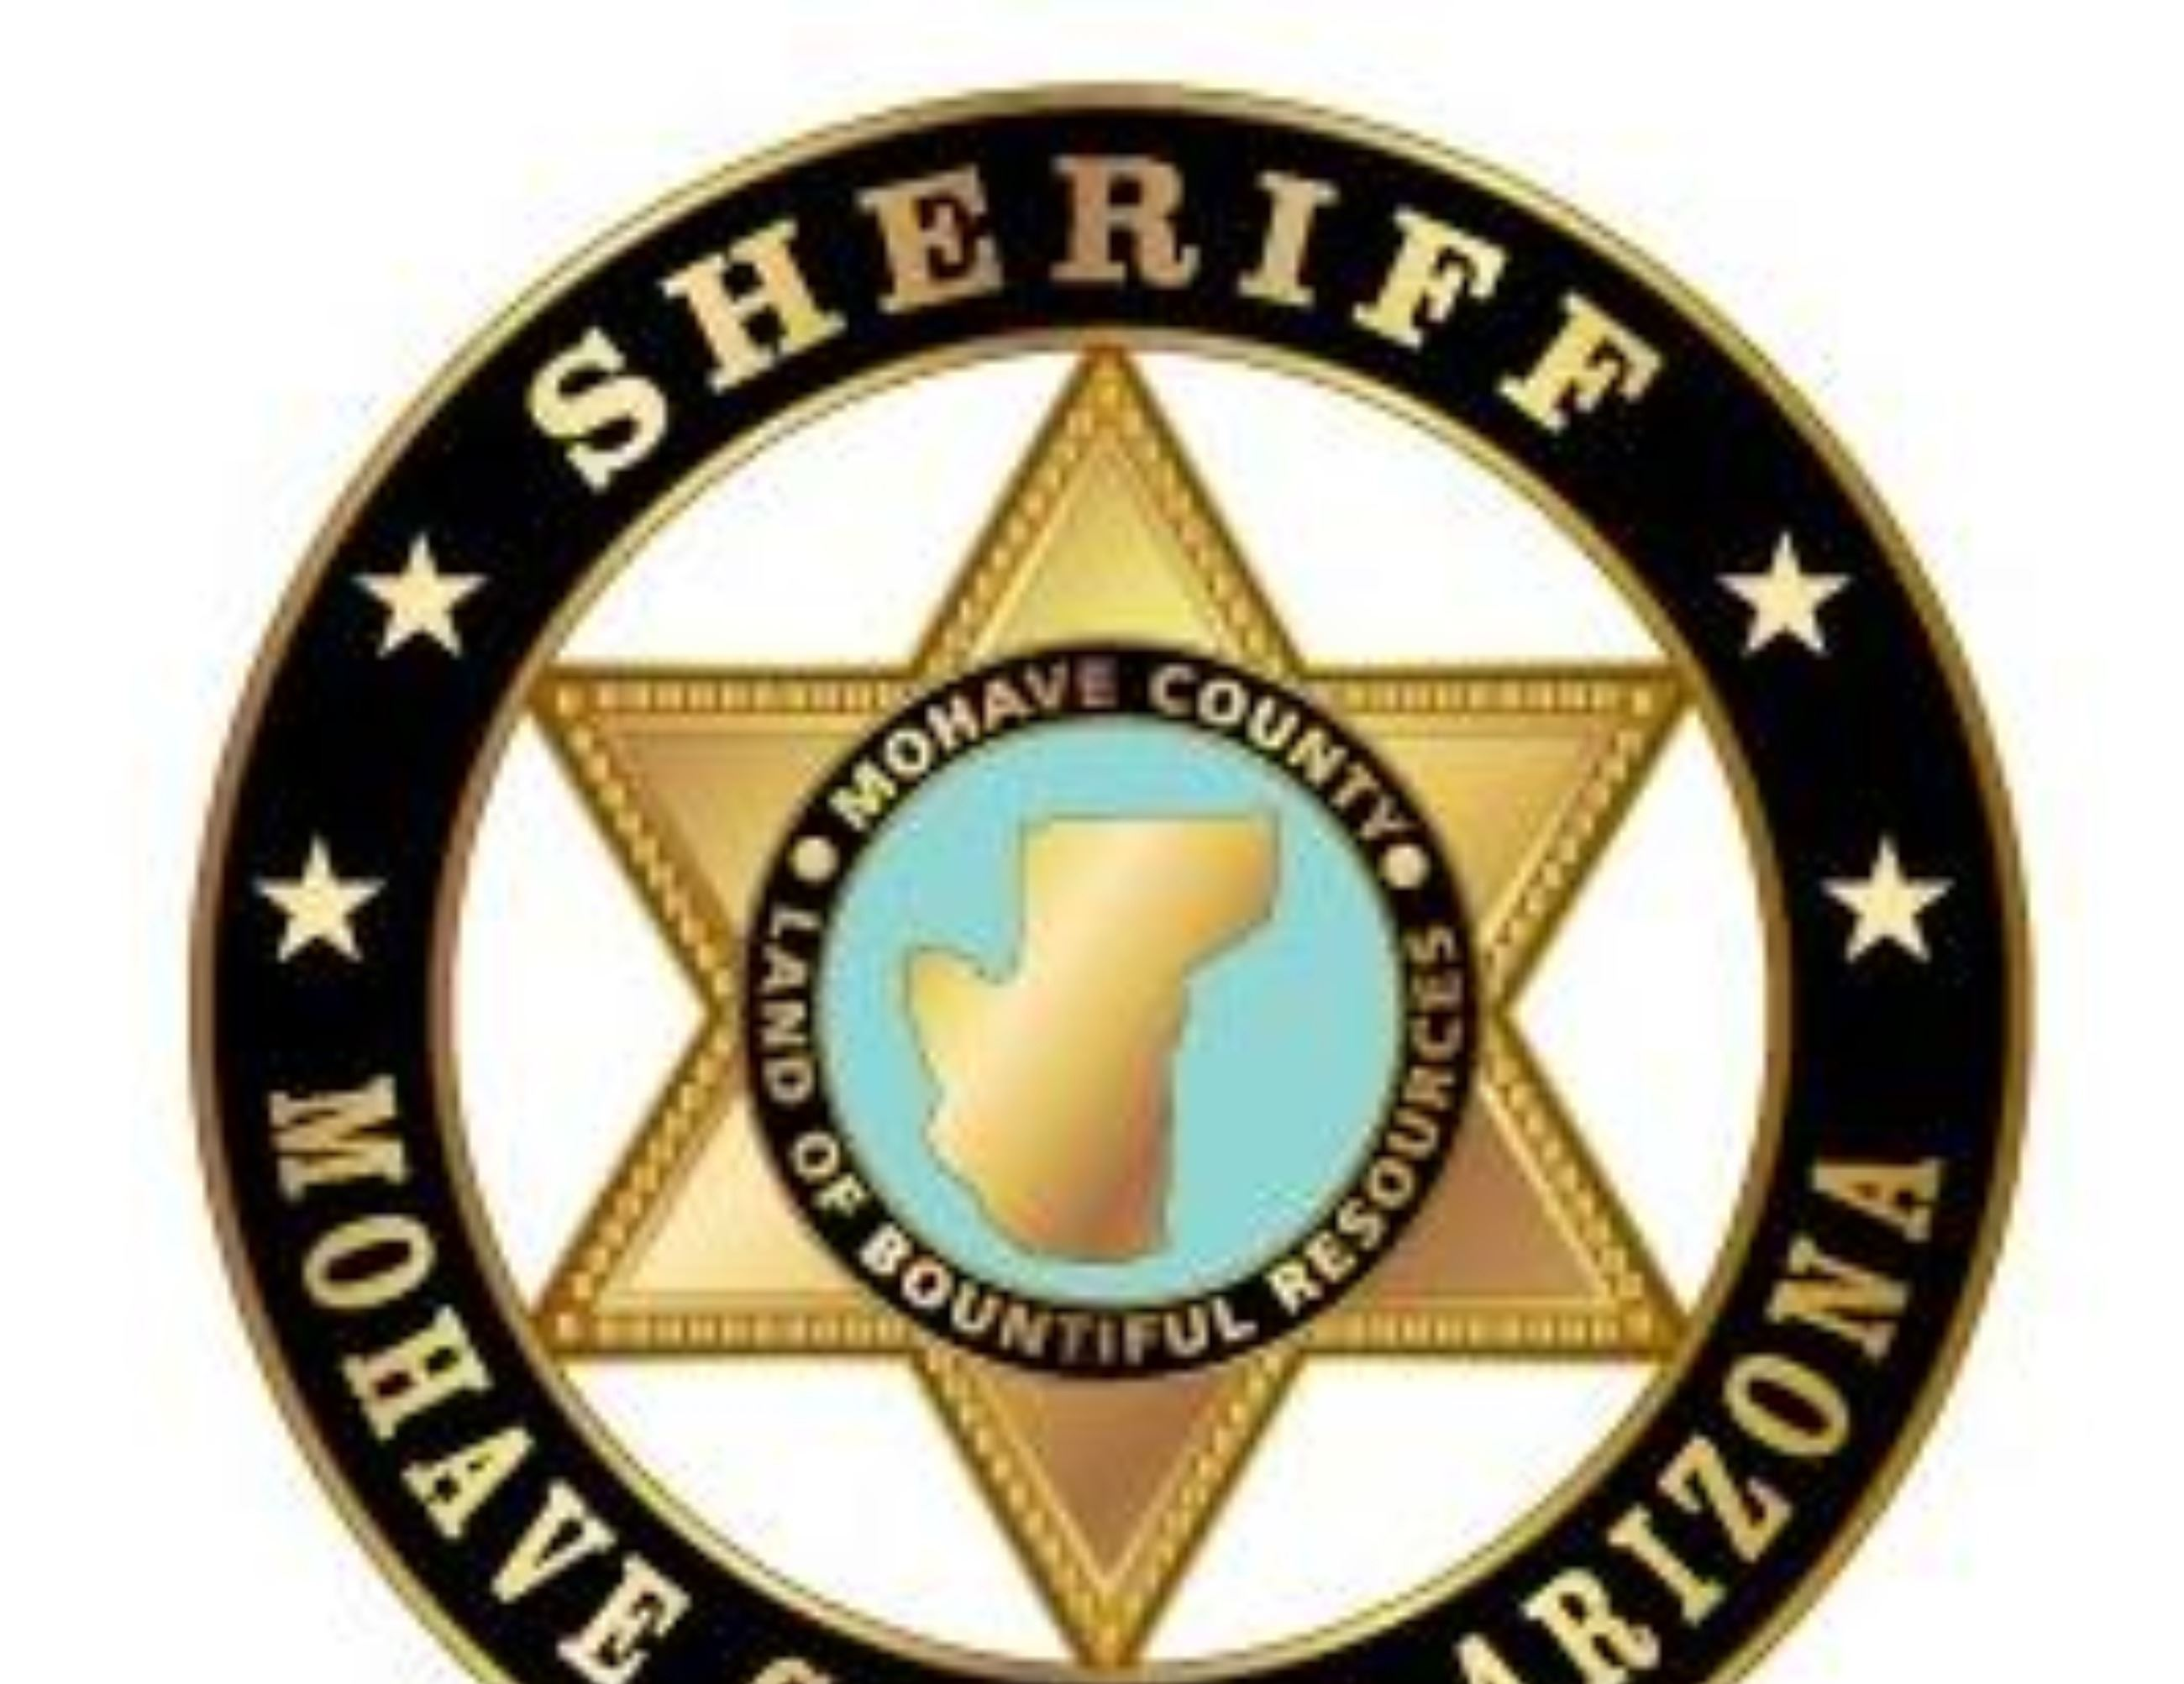 Mohave County Sheriffs Office Shield